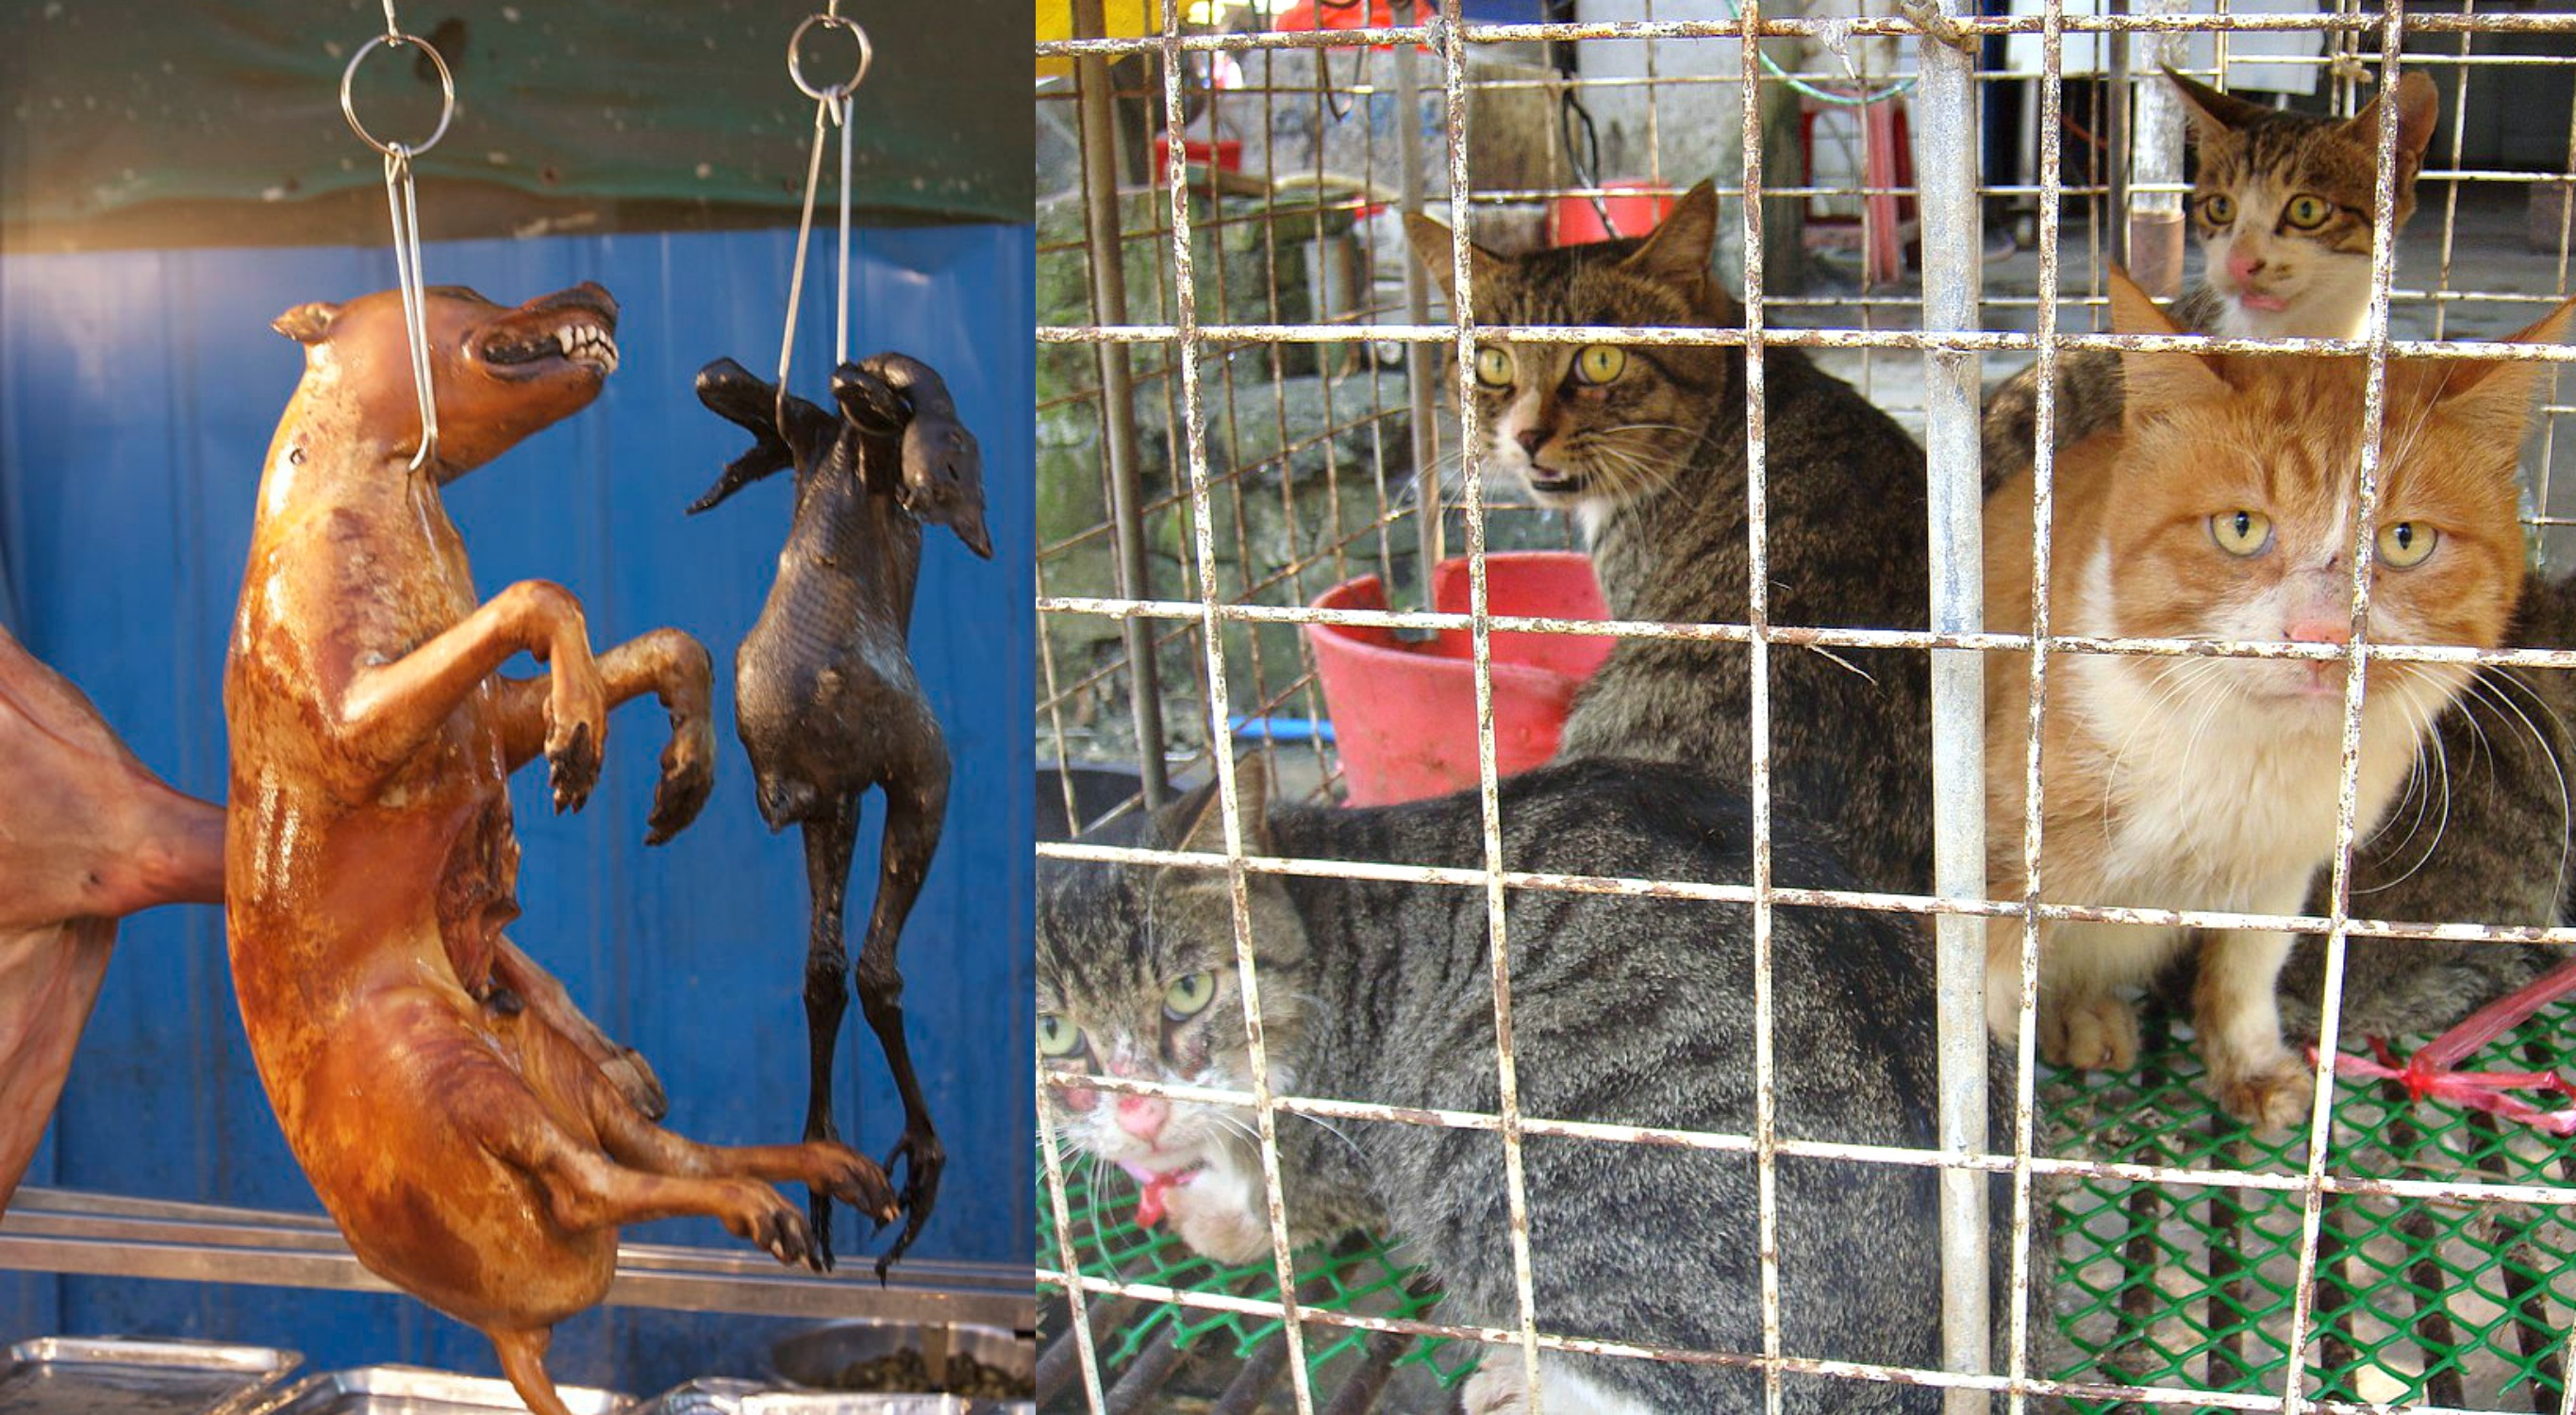 The Dog Cat Meat Trade in South Korea